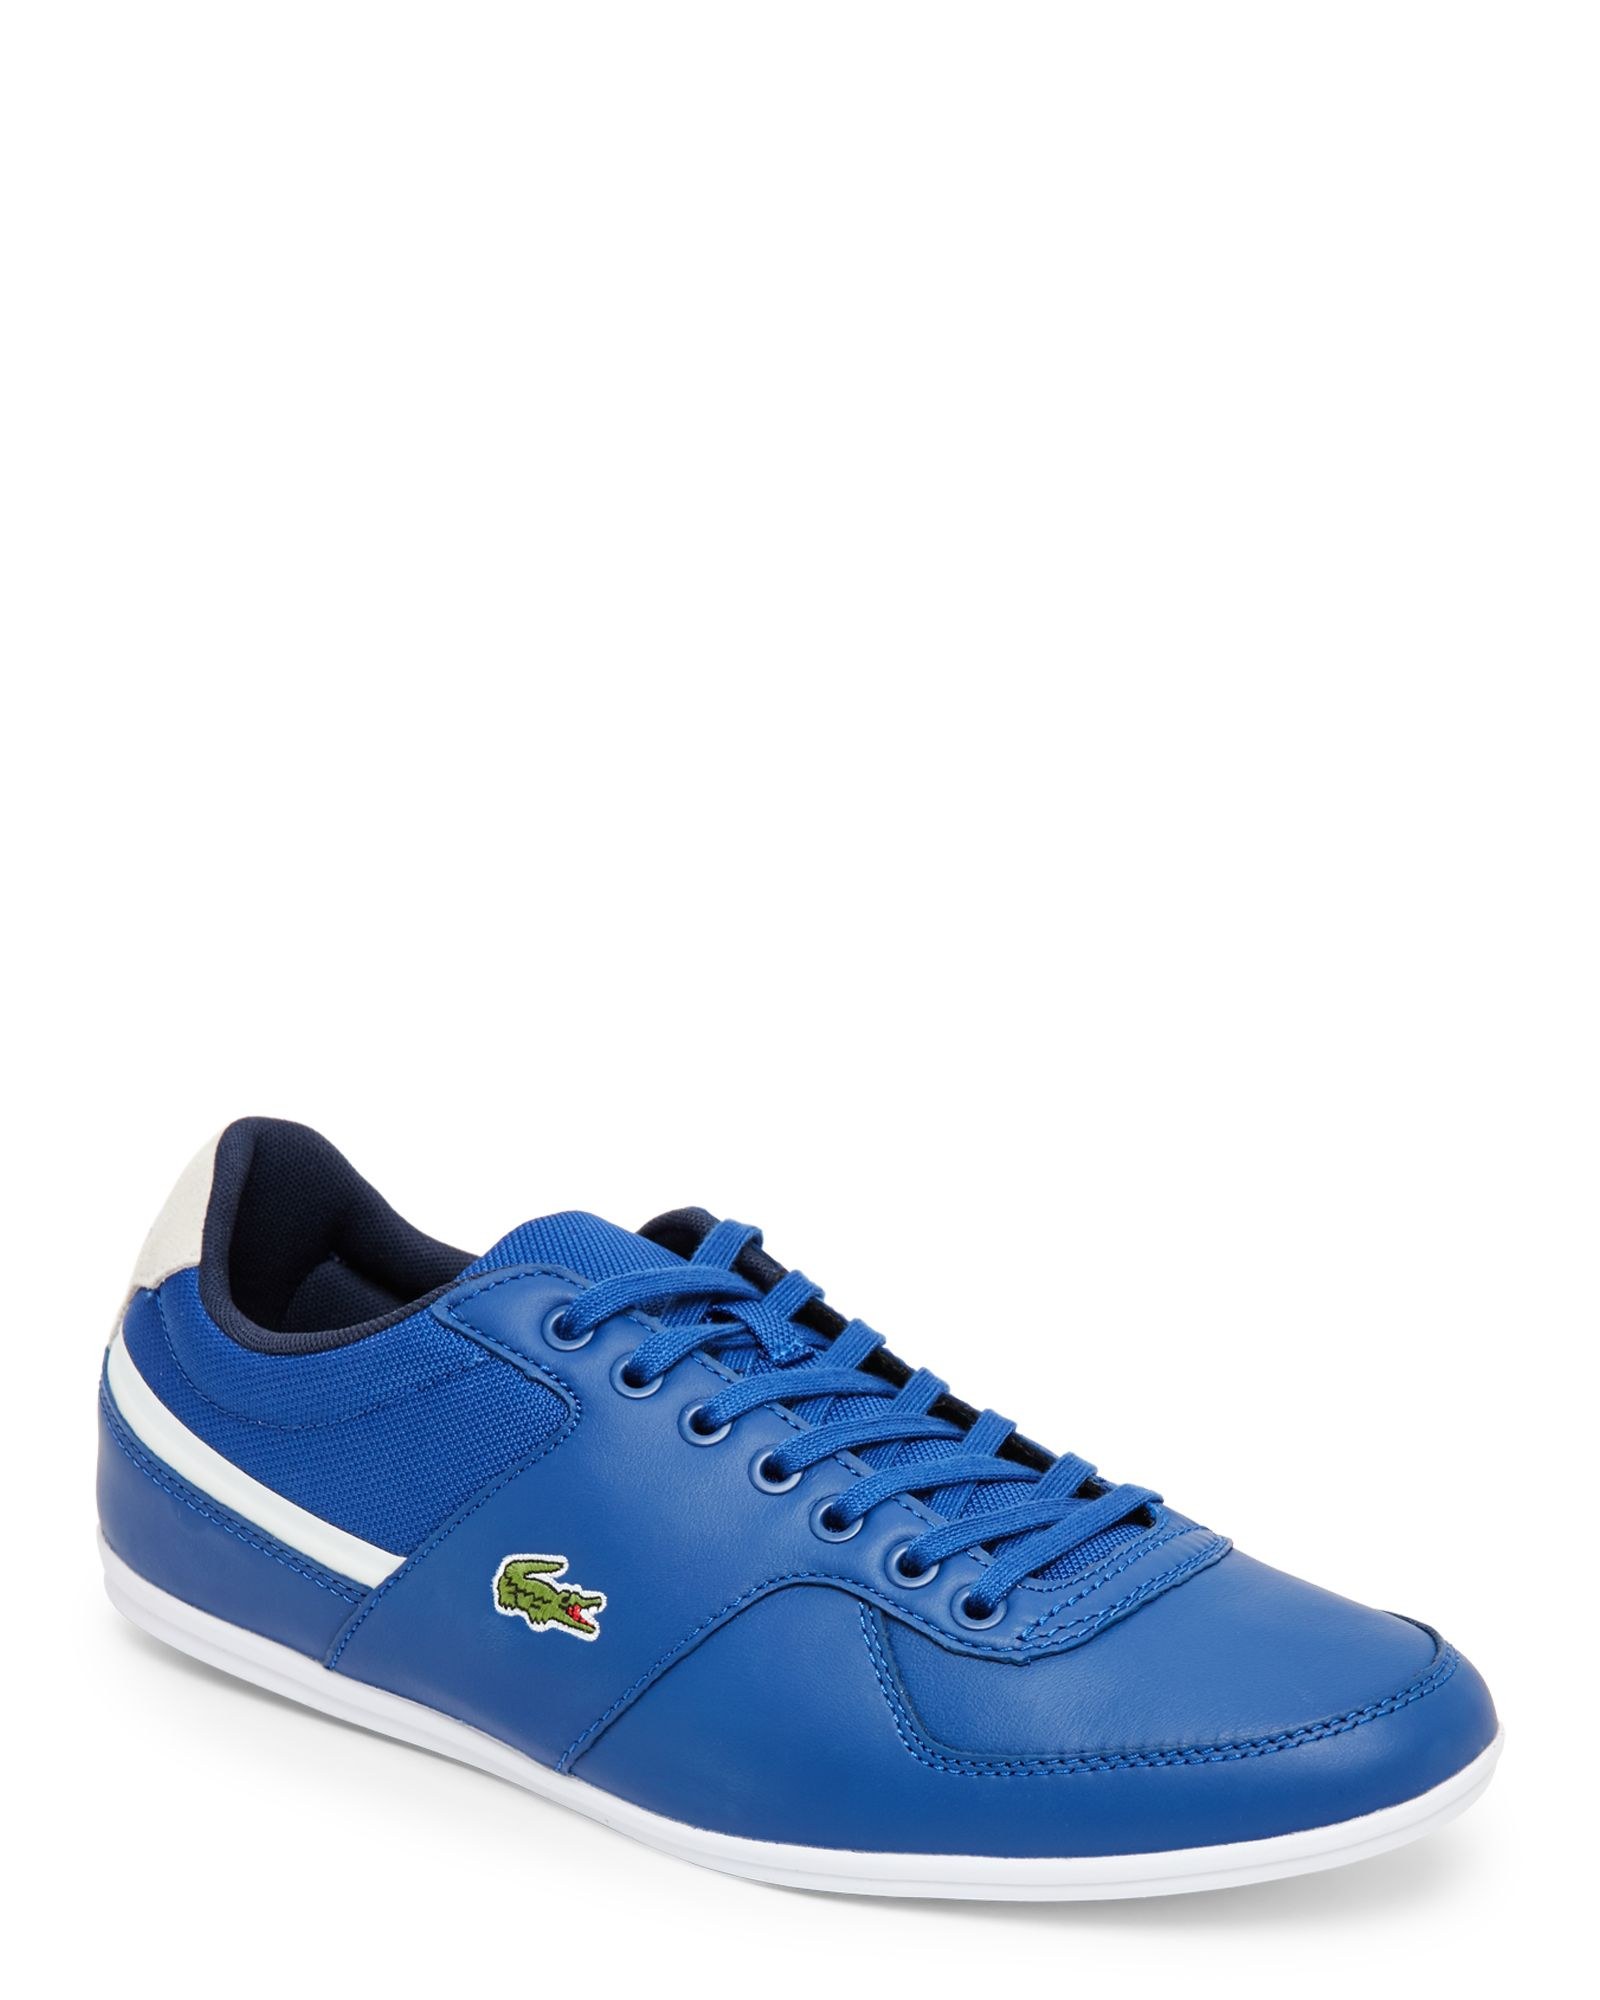 bb65a1824759db Dark Blue Tailore Sport 116 1 SPM Low Top Sneakers in 2019 ...